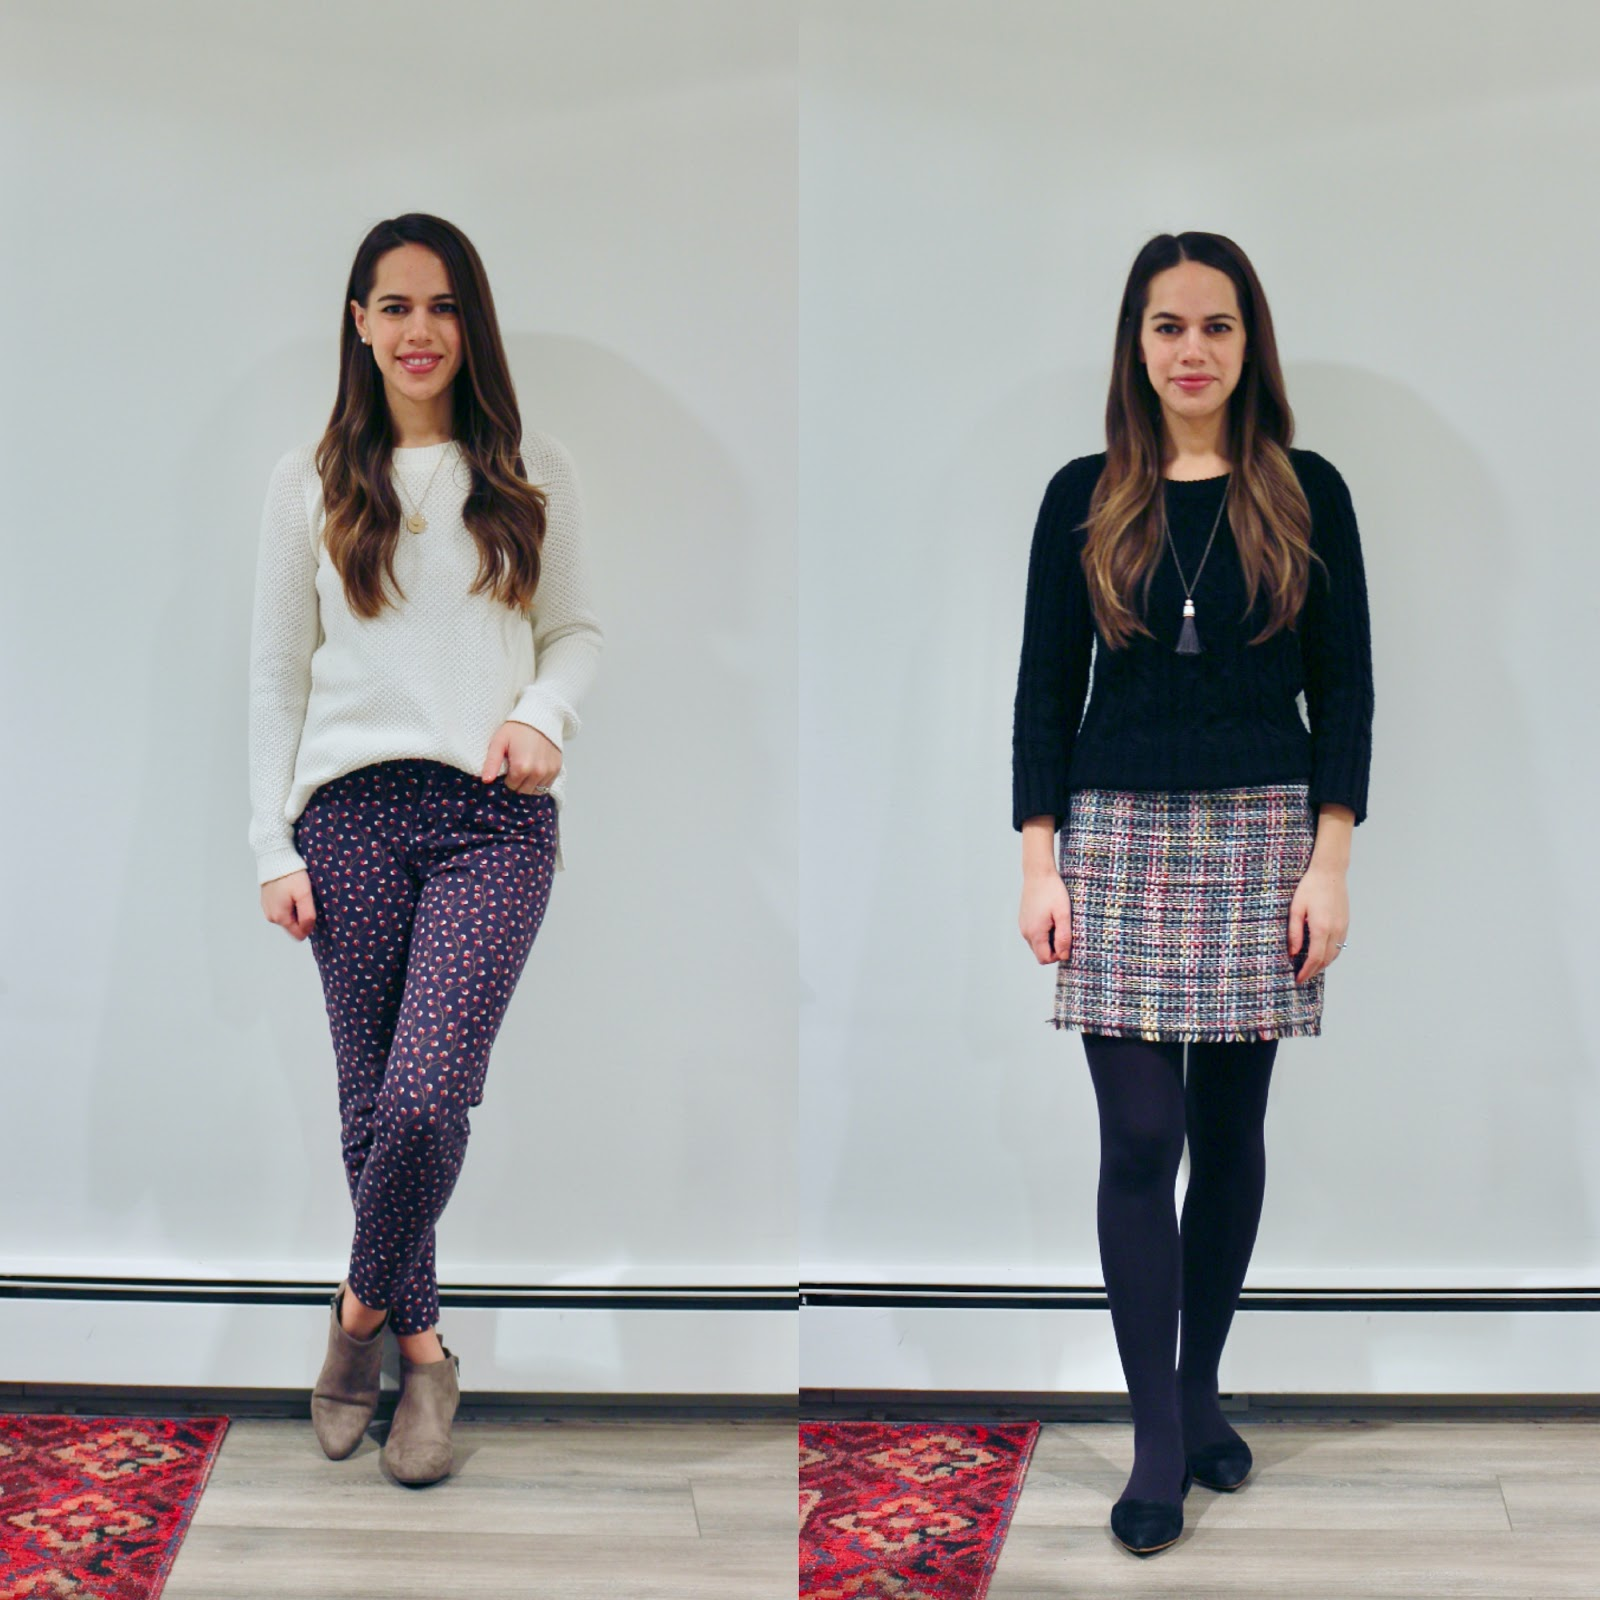 Jules in Flats - January Outfits Week 1 (Business Casual Workwear on a Budget)